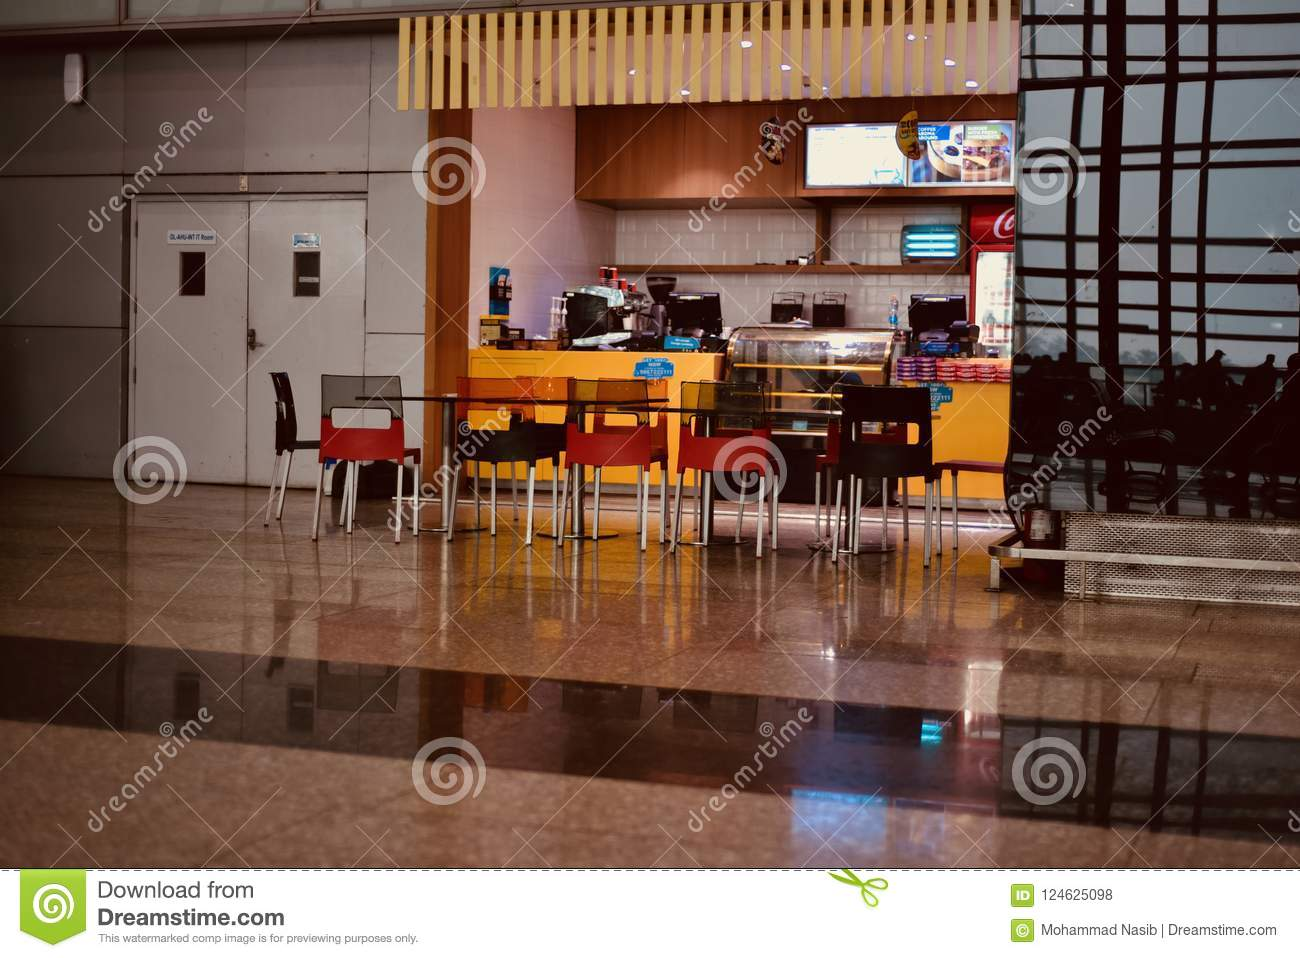 Download An Airport Coffee Shop Isolated Unique Photograph Editorial Stock Photo - Image of airport, abstract: 124625098